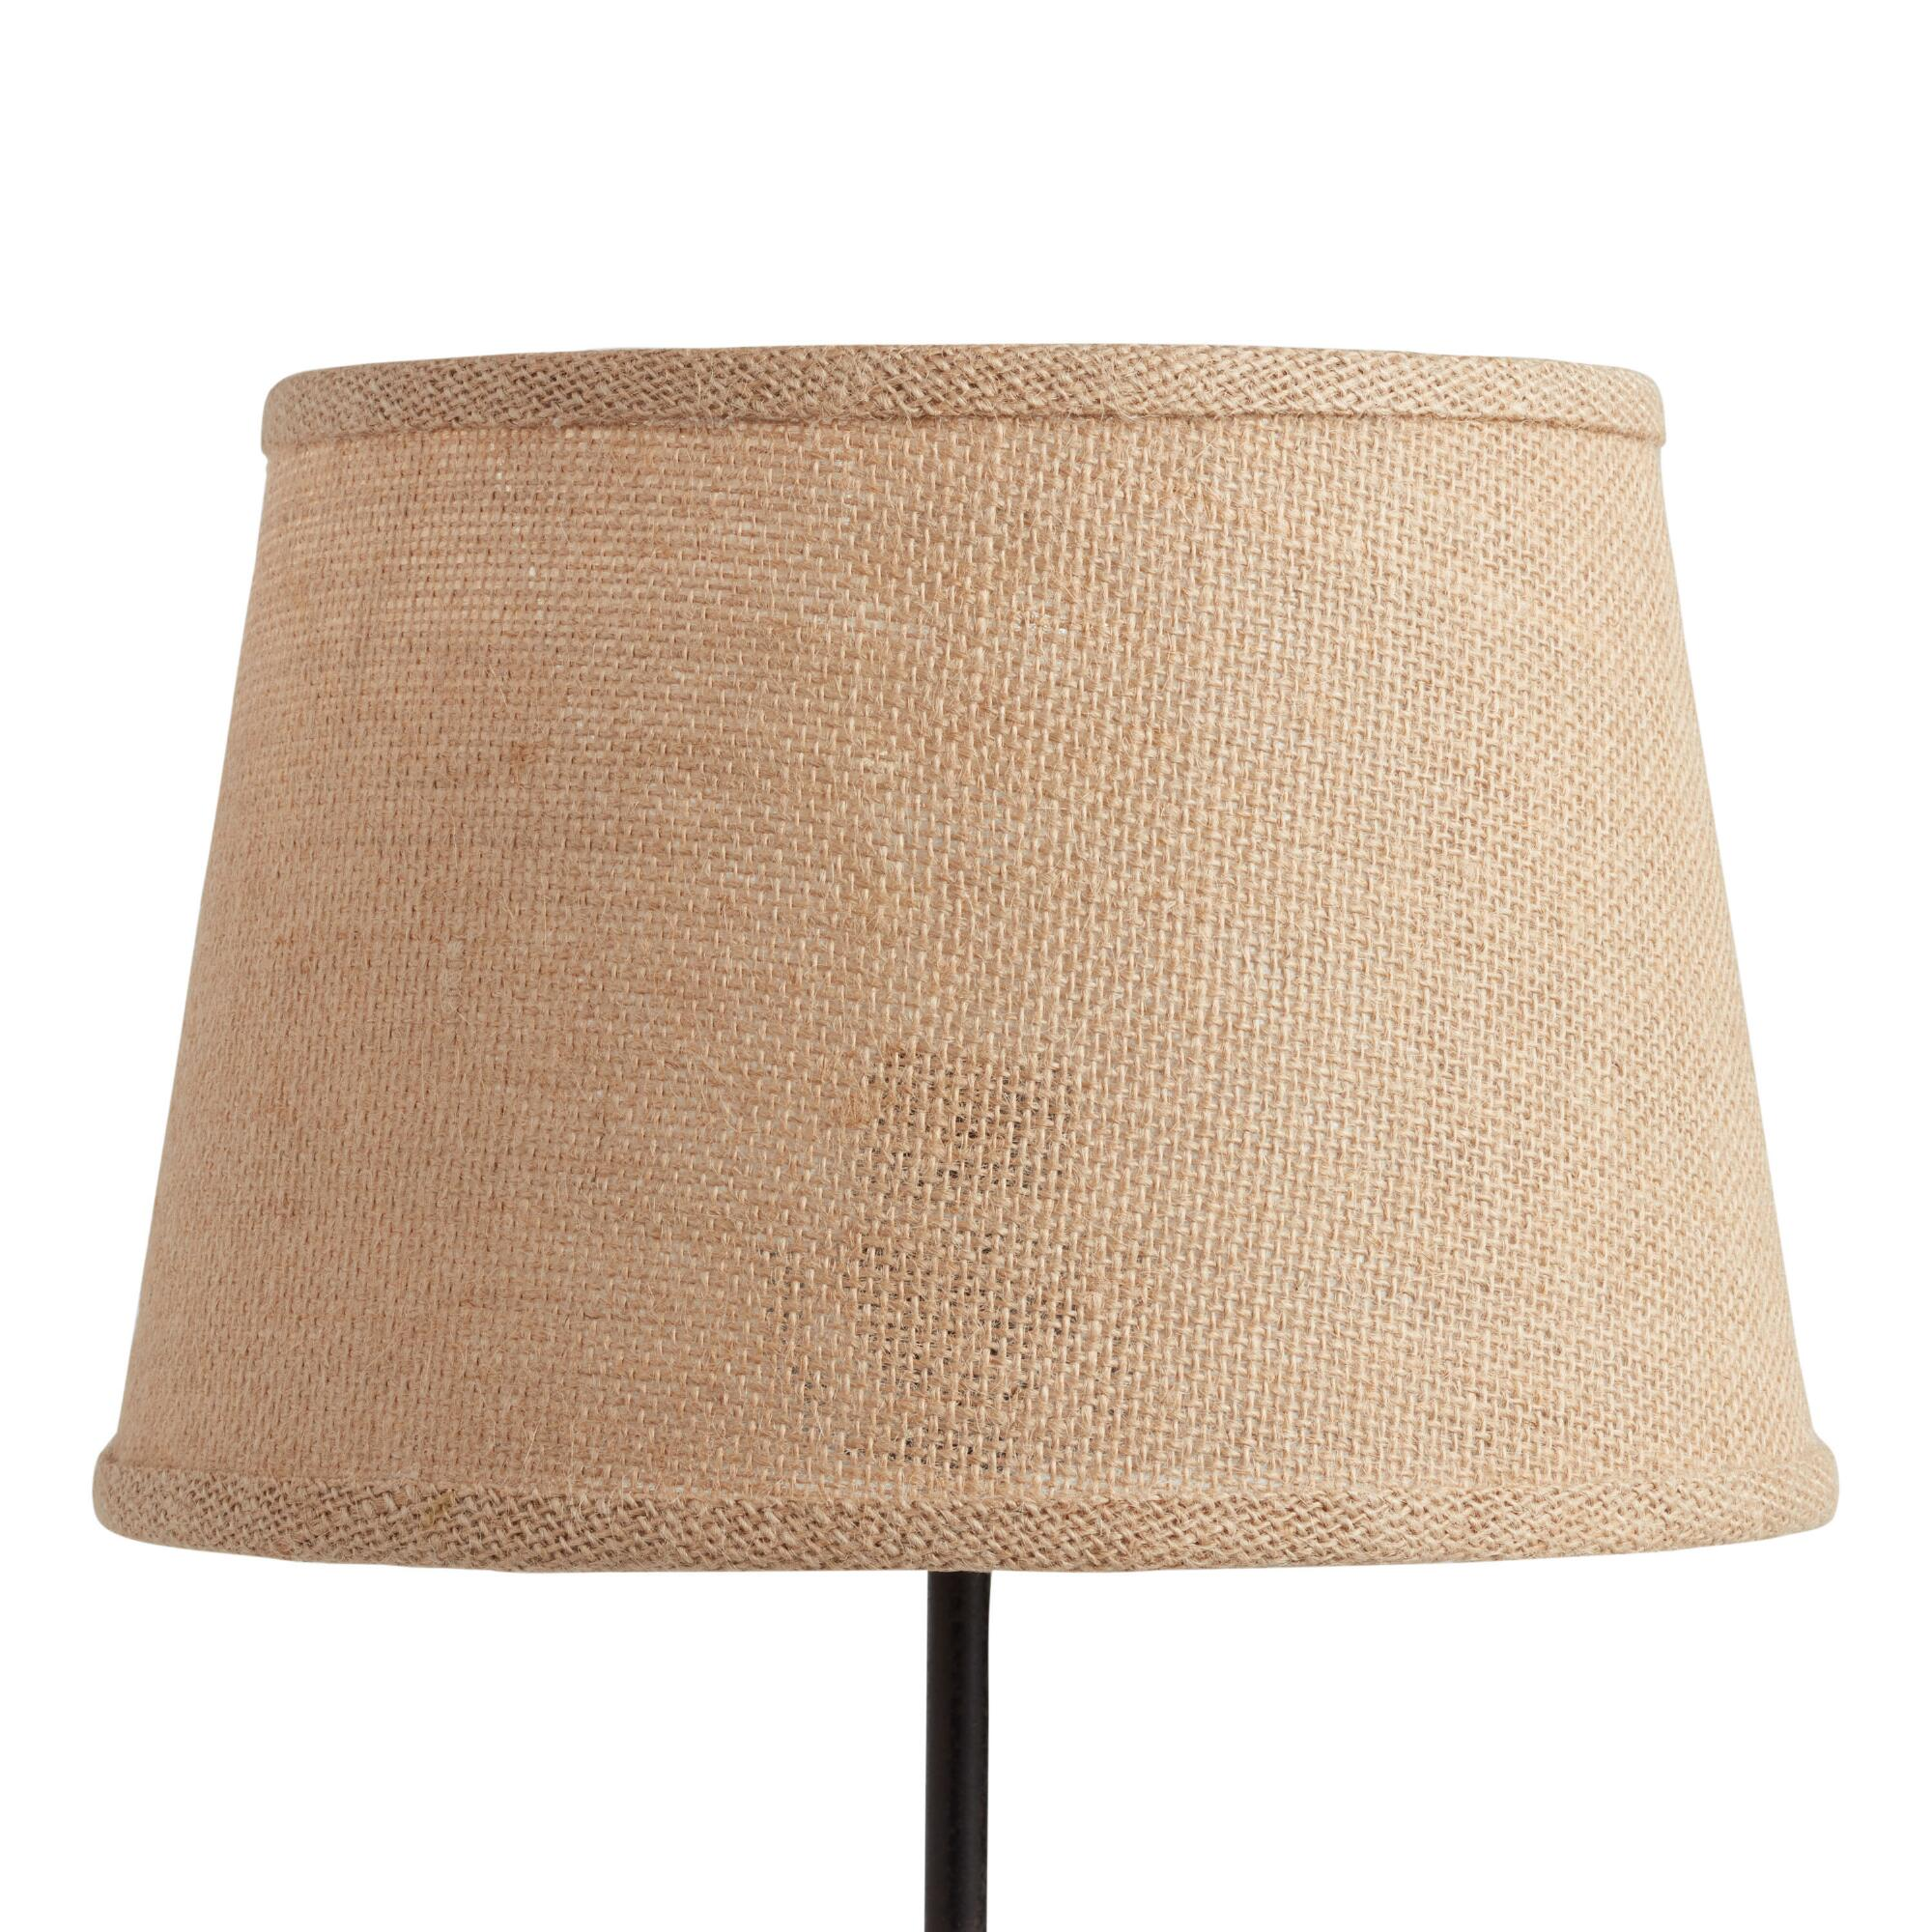 Natural Burlap Accent Lamp Shade - Natural Fiber by World Market